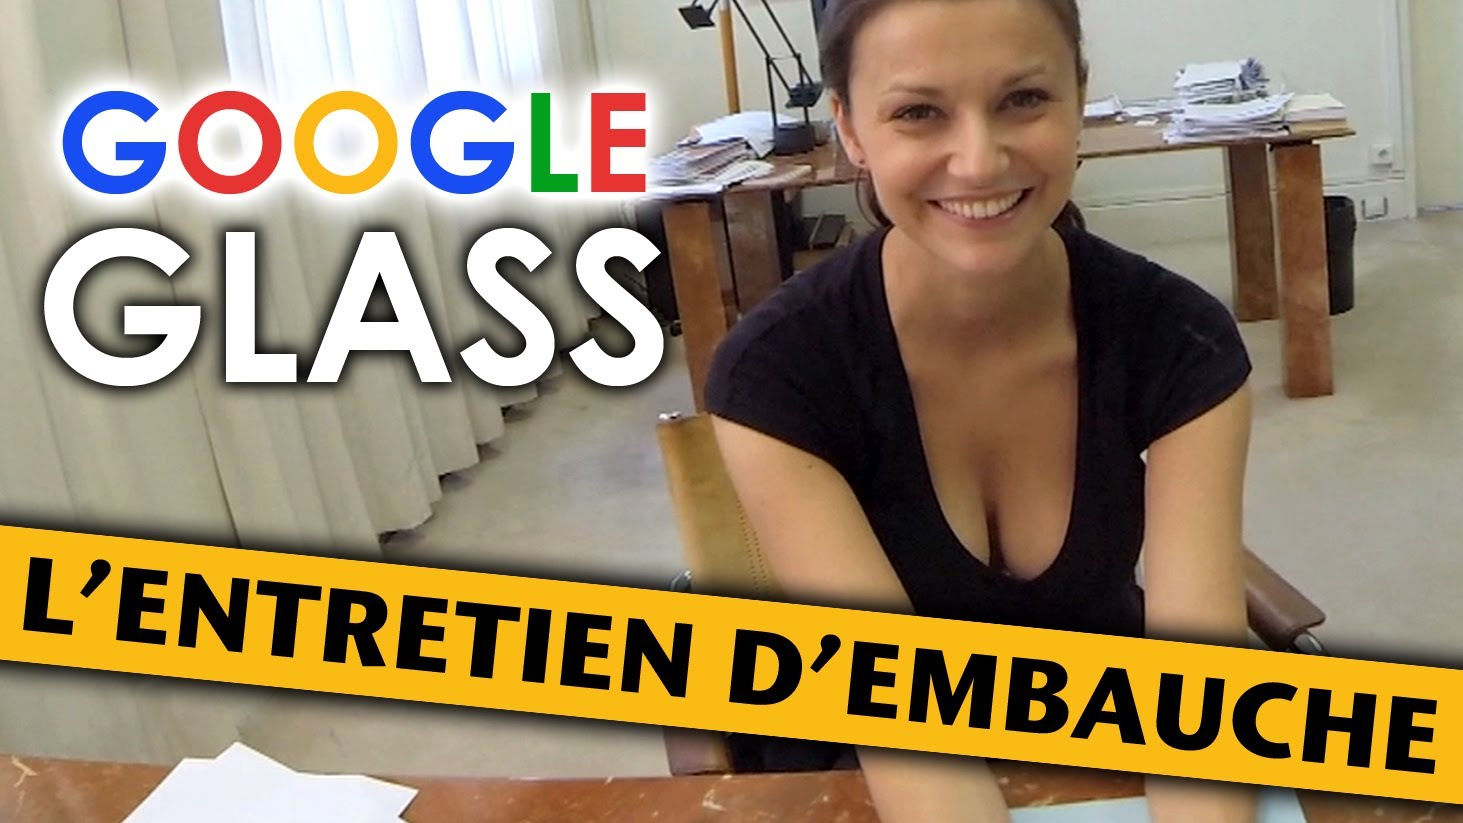 comment google glass revolutionner entretien embauche humour videos google glass